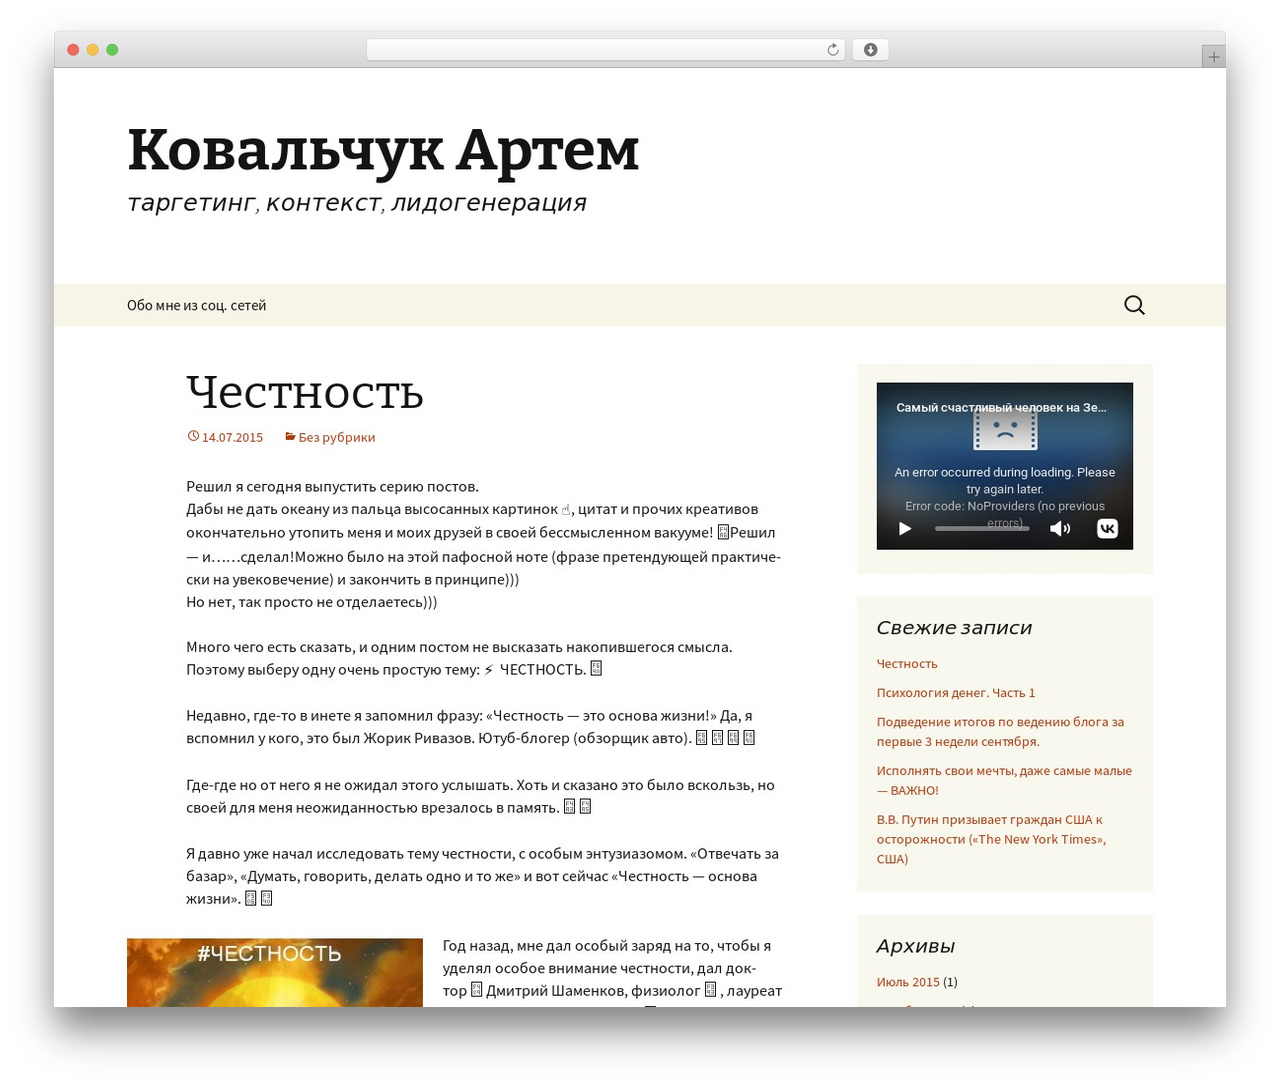 WP theme Twenty Thirteen - artemkovalchuk.ru